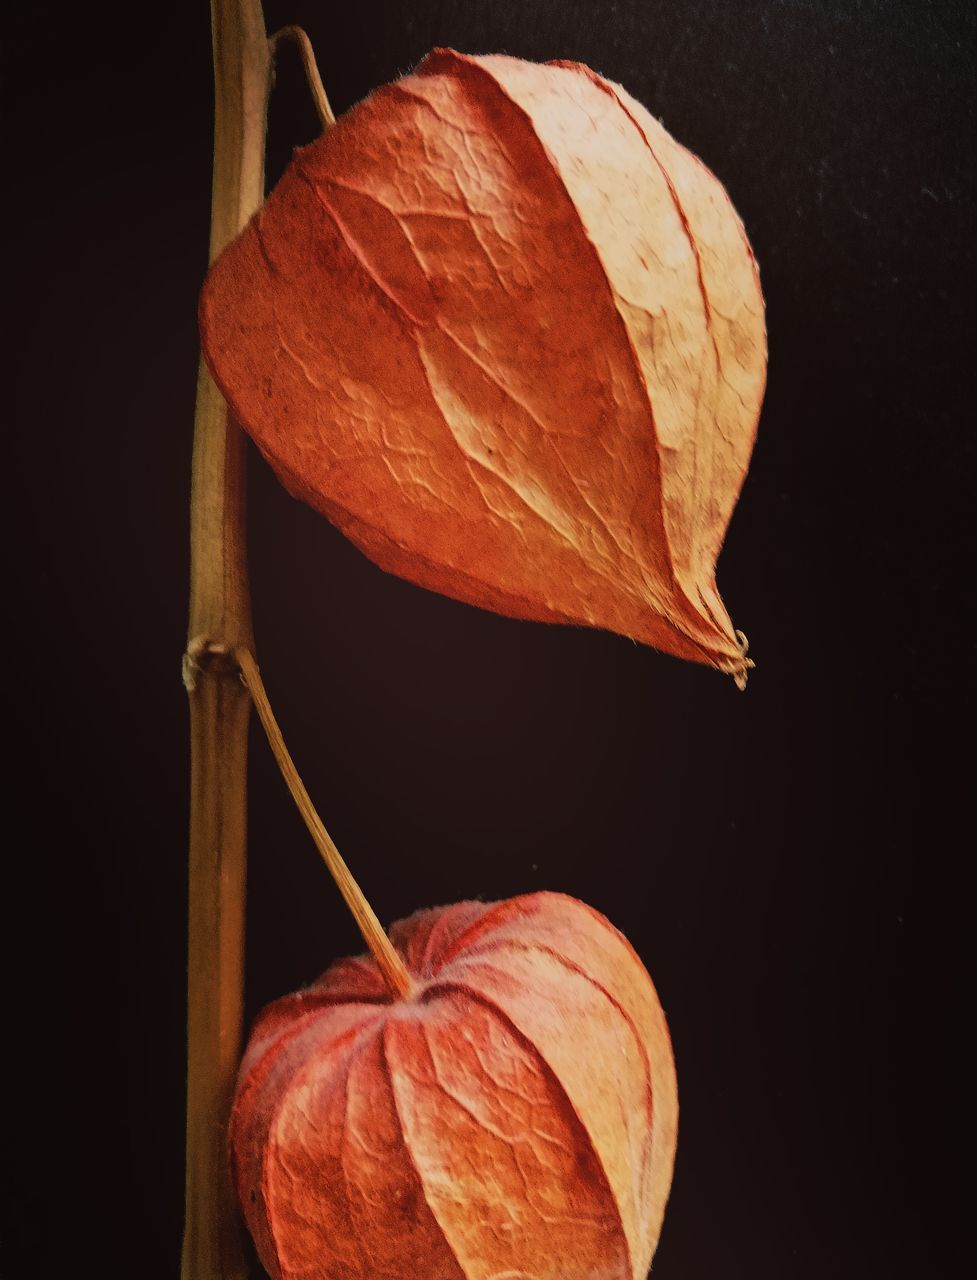 leaf, close-up, no people, studio shot, black background, nature, autumn, outdoors, freshness, day, beauty in nature, fragility, food